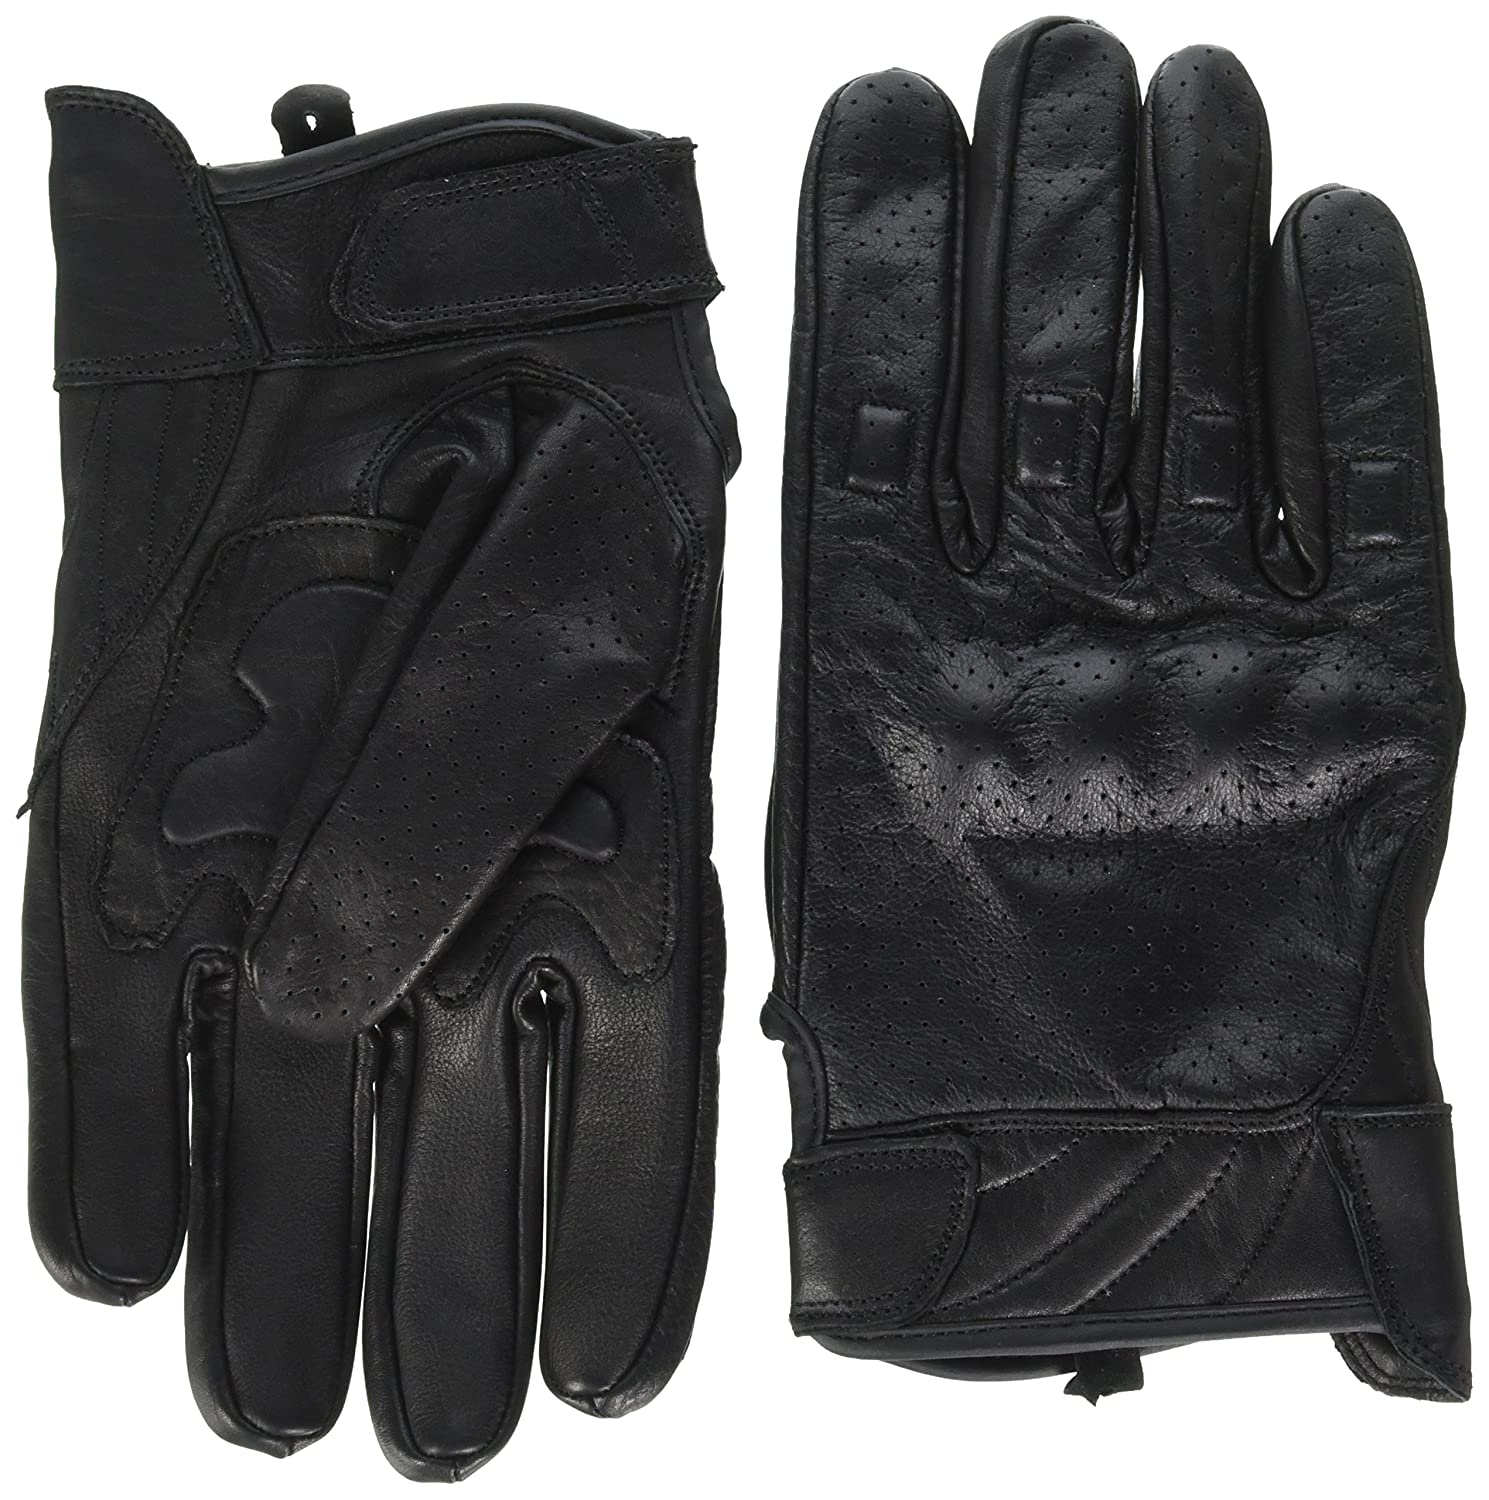 Mens leather gloves black friday - Amazon Com Milwaukee Leather Men S Premium Leather Perforated Cruiser Gloves Mg7500 L Milwaukee Leather Automotive